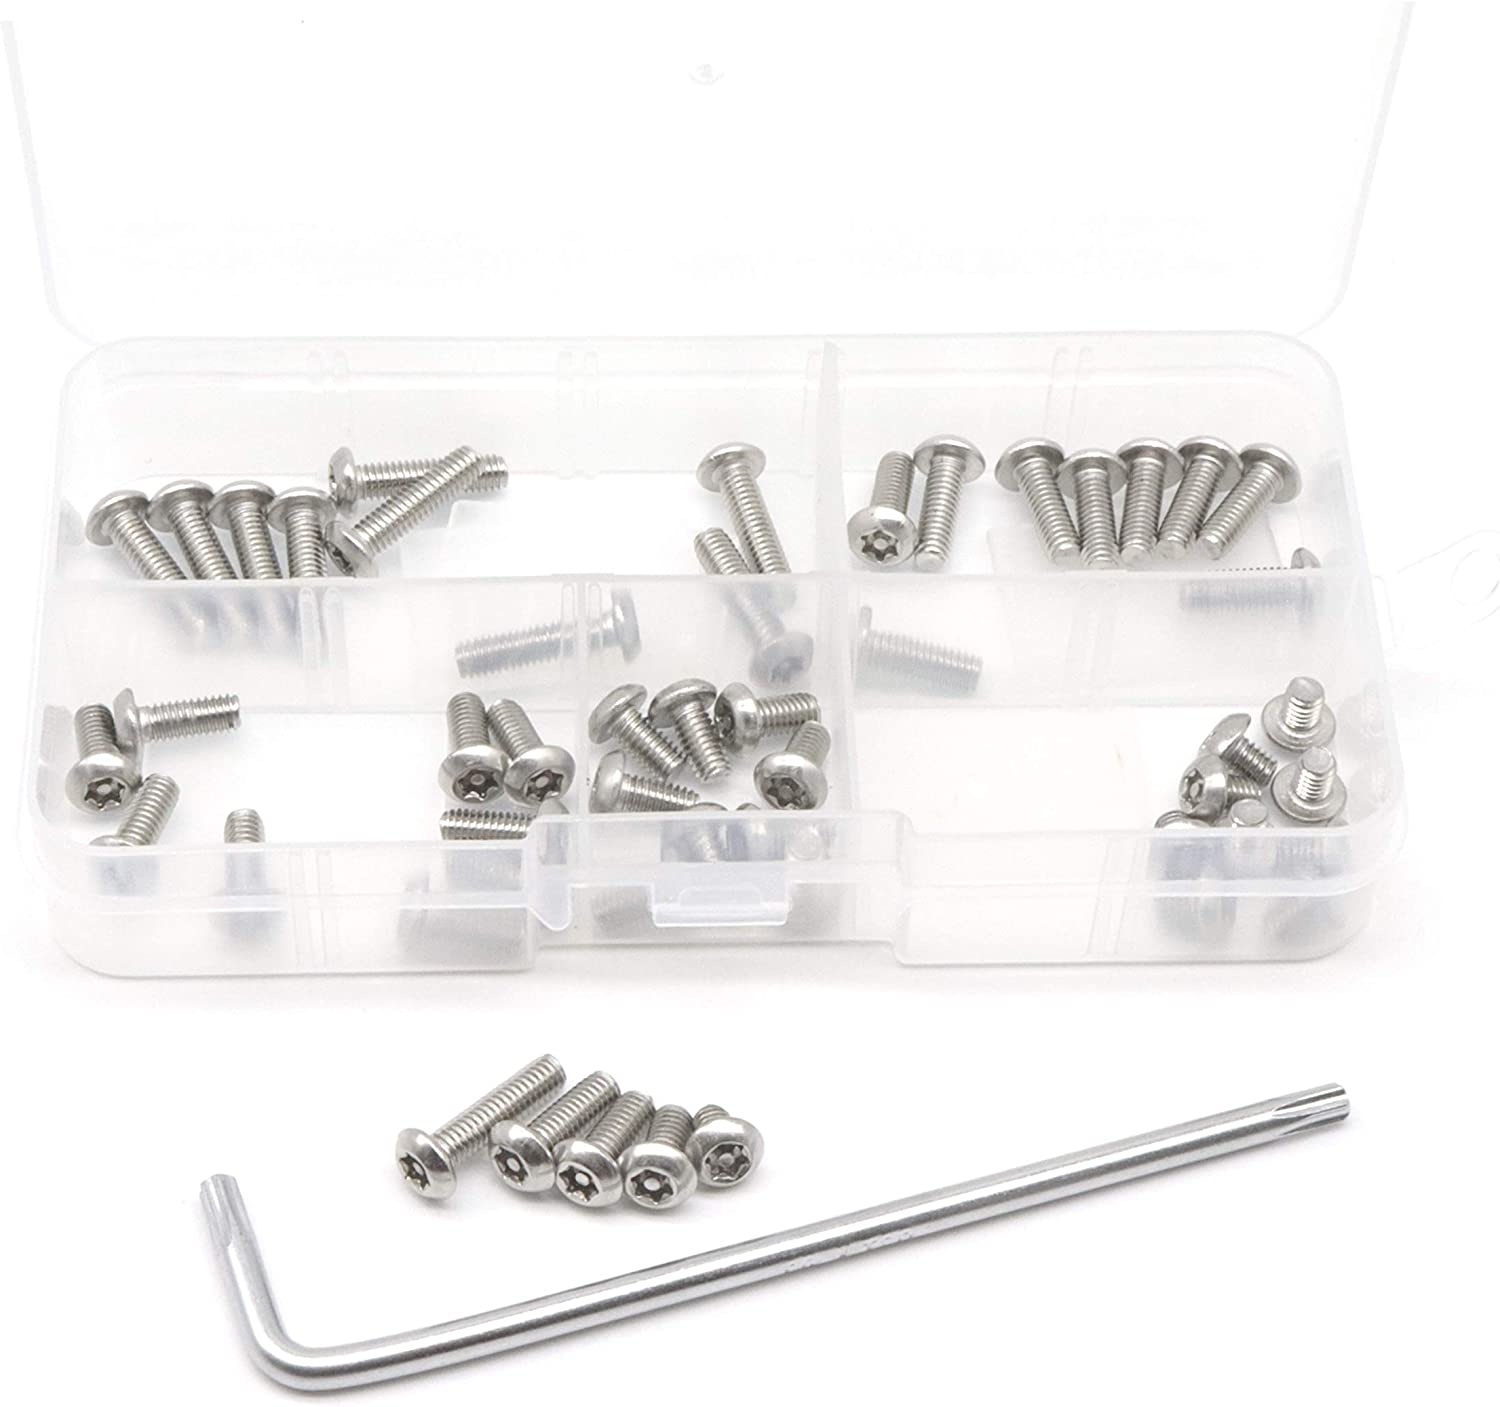 12 @ M3 X 10 STAINLESS STEEL A2 TORX TX PIN BUTTON HEAD SECURITY SCREW TX10 T10